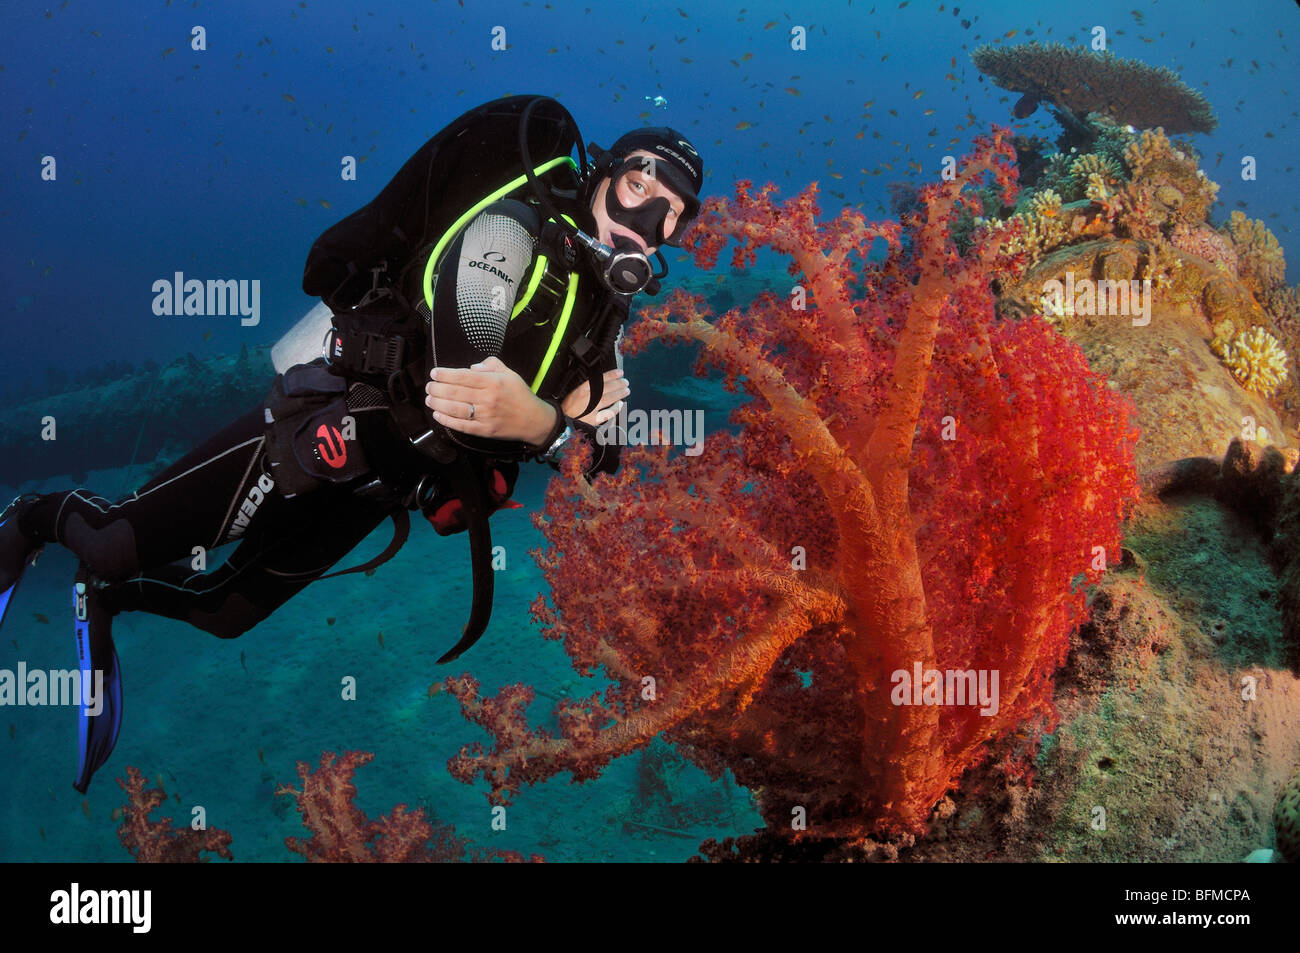 Scuba diver MFO Pipeline dive site with soft corals, Nuweiba, Red Sea, Egypt - Stock Image